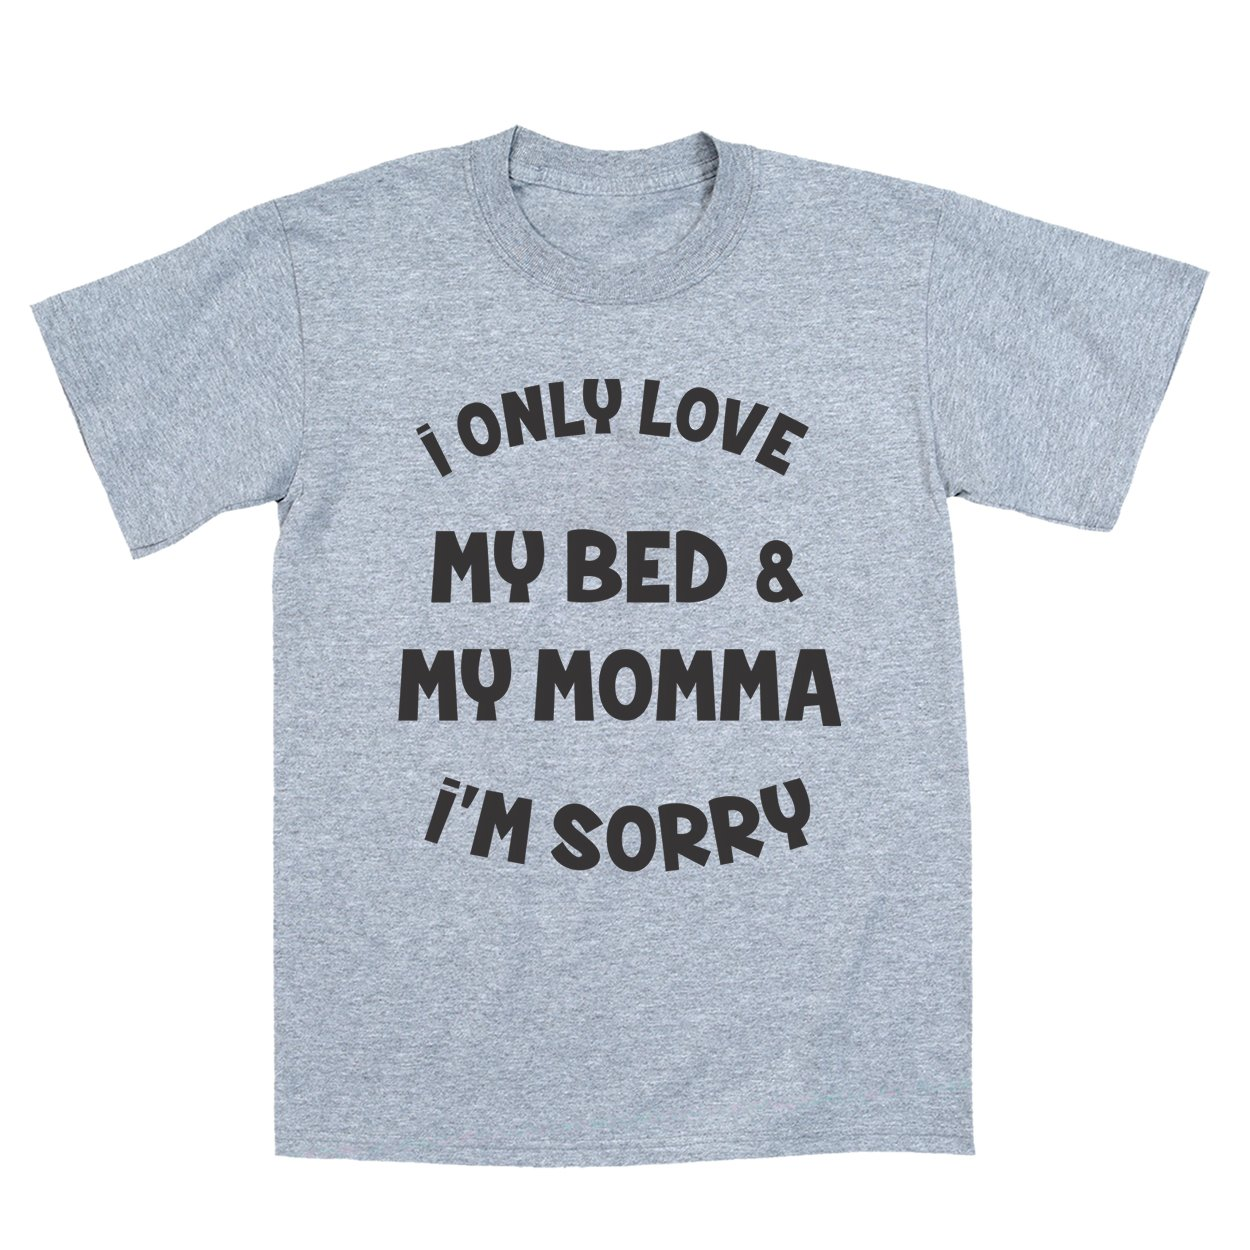 I Only Love My Bed and My Momma Toddler Shirt 4T Gray